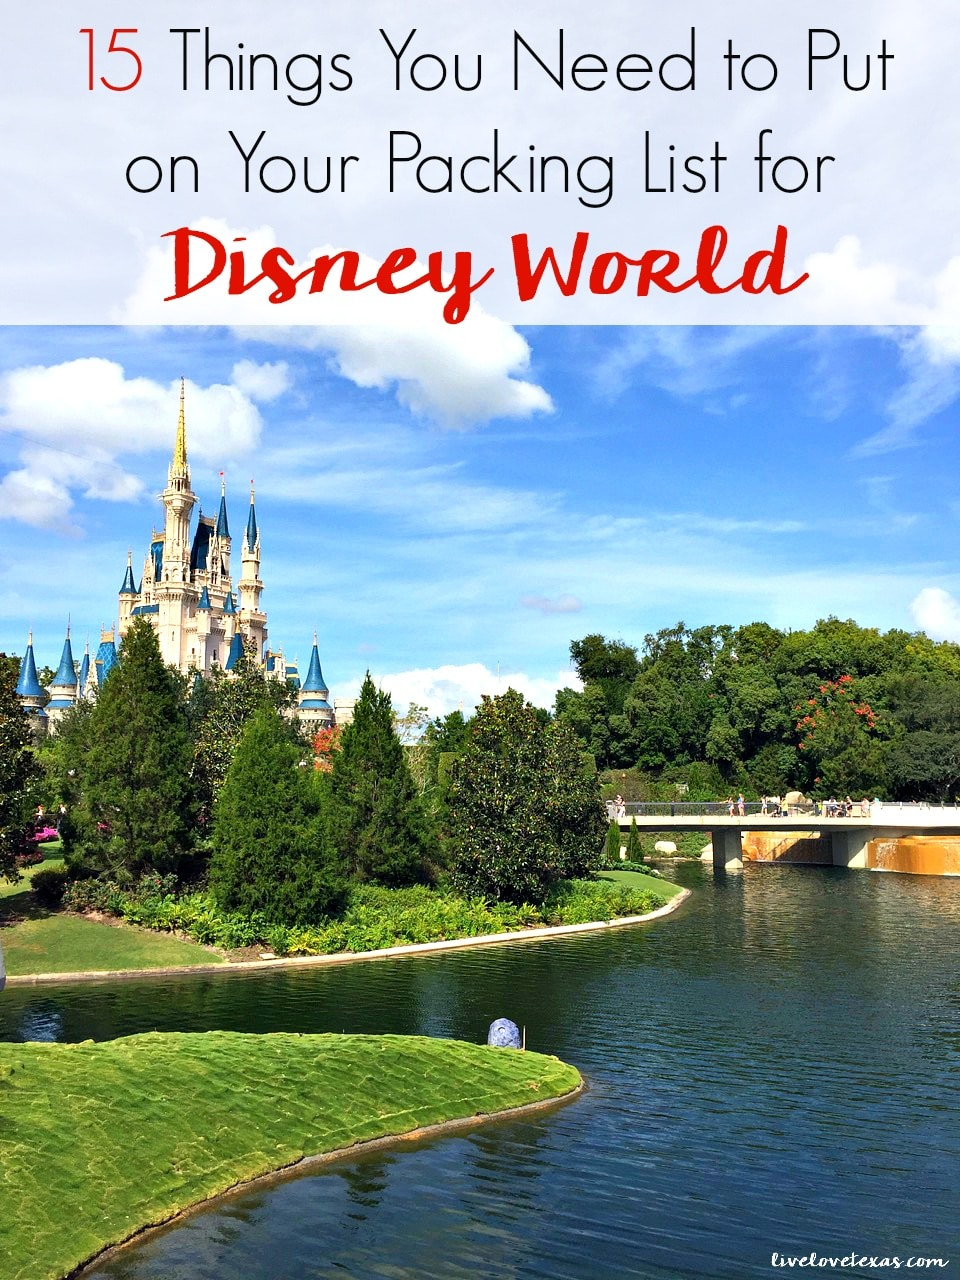 Don't plan the vacation of a lifetime without reading this post of the must have items you need on your packing list for Disney World!